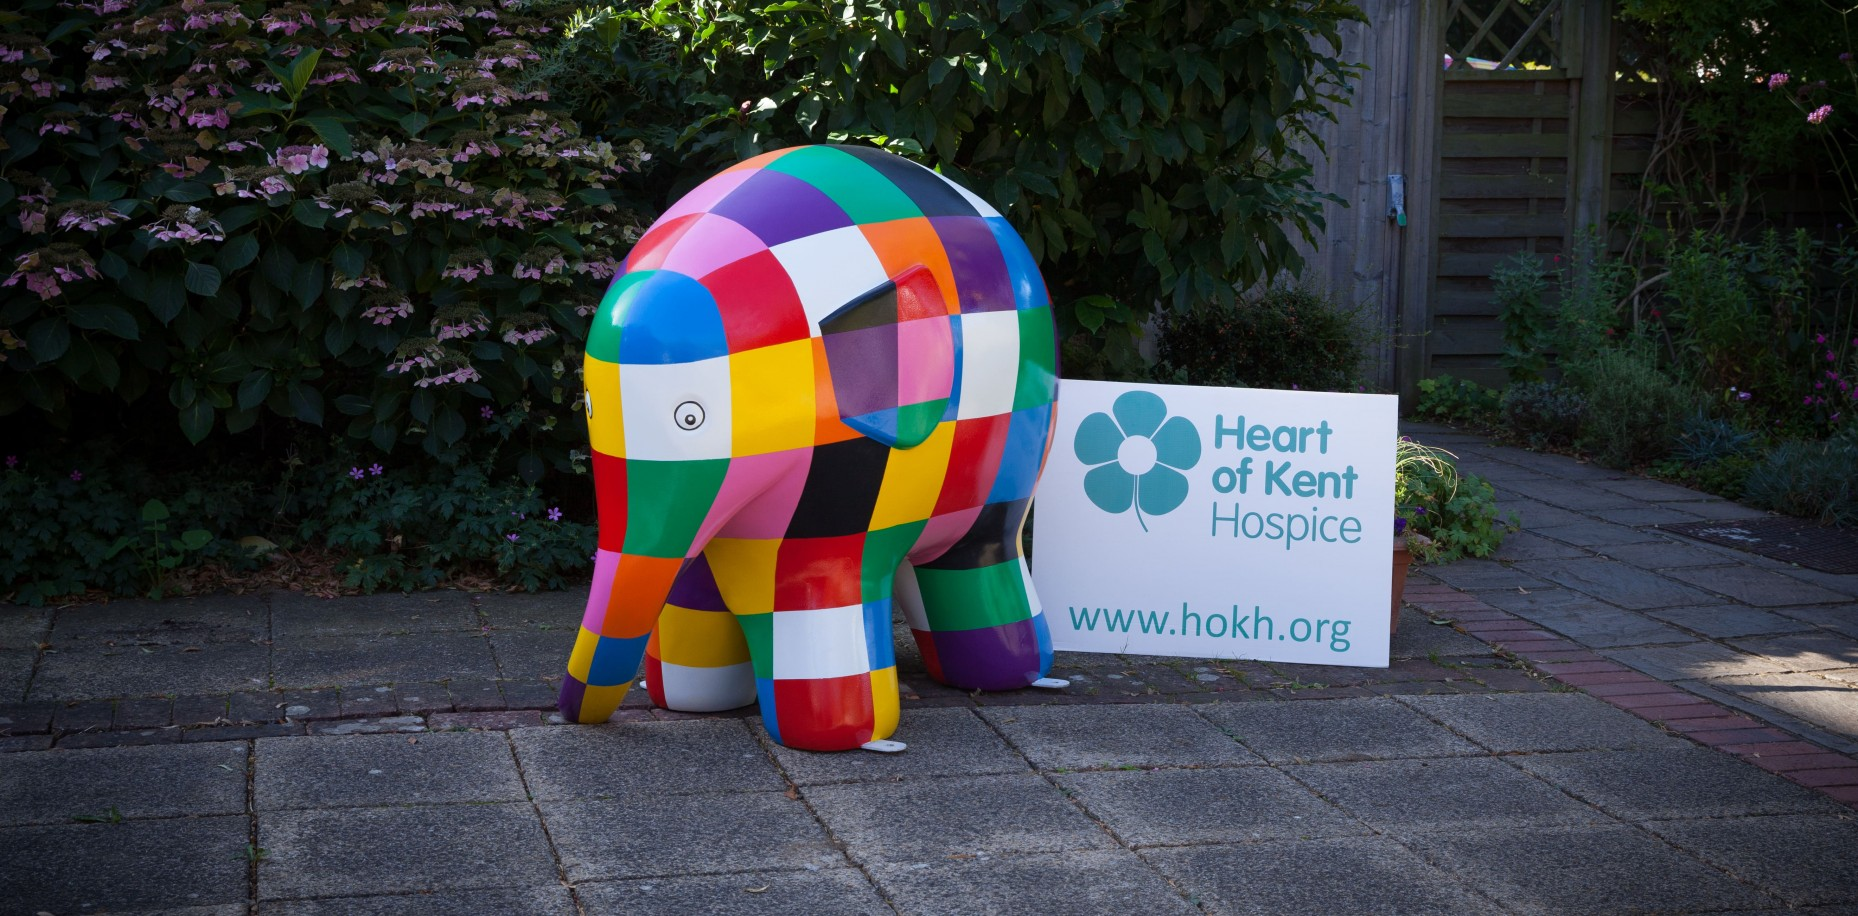 Westerhill Homes are the proud Official Presenting Partner for Elmer's Great Big Heart of Kent Parade this summer.